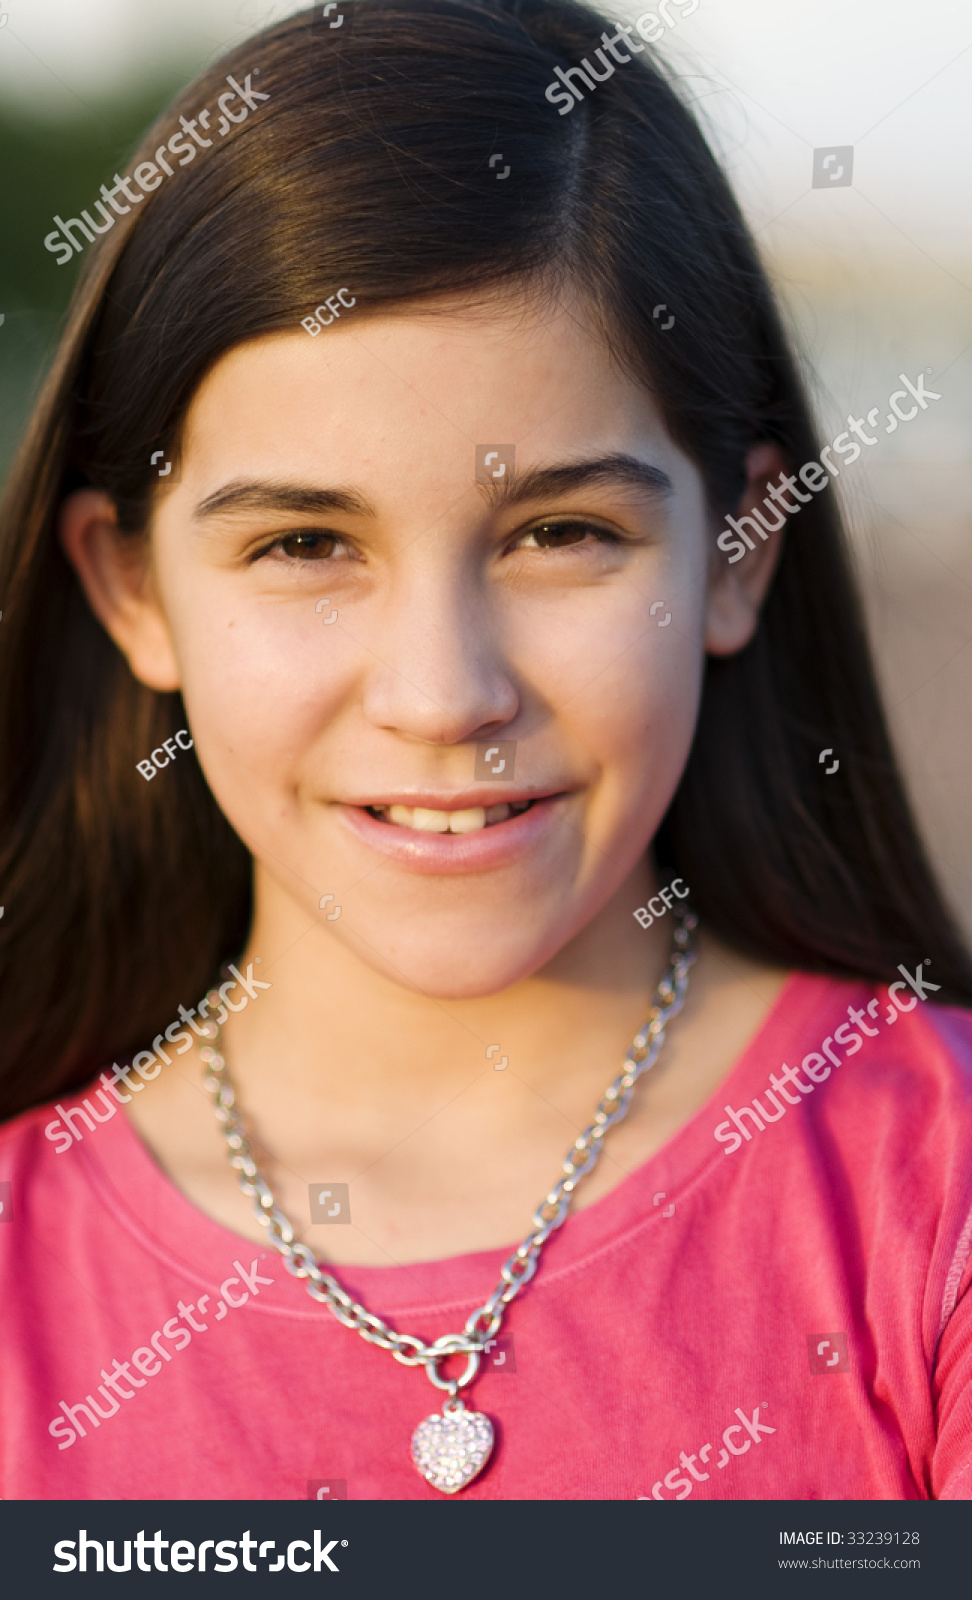 Portrait Of A Pretty Young Girl Stock Photo 33239128